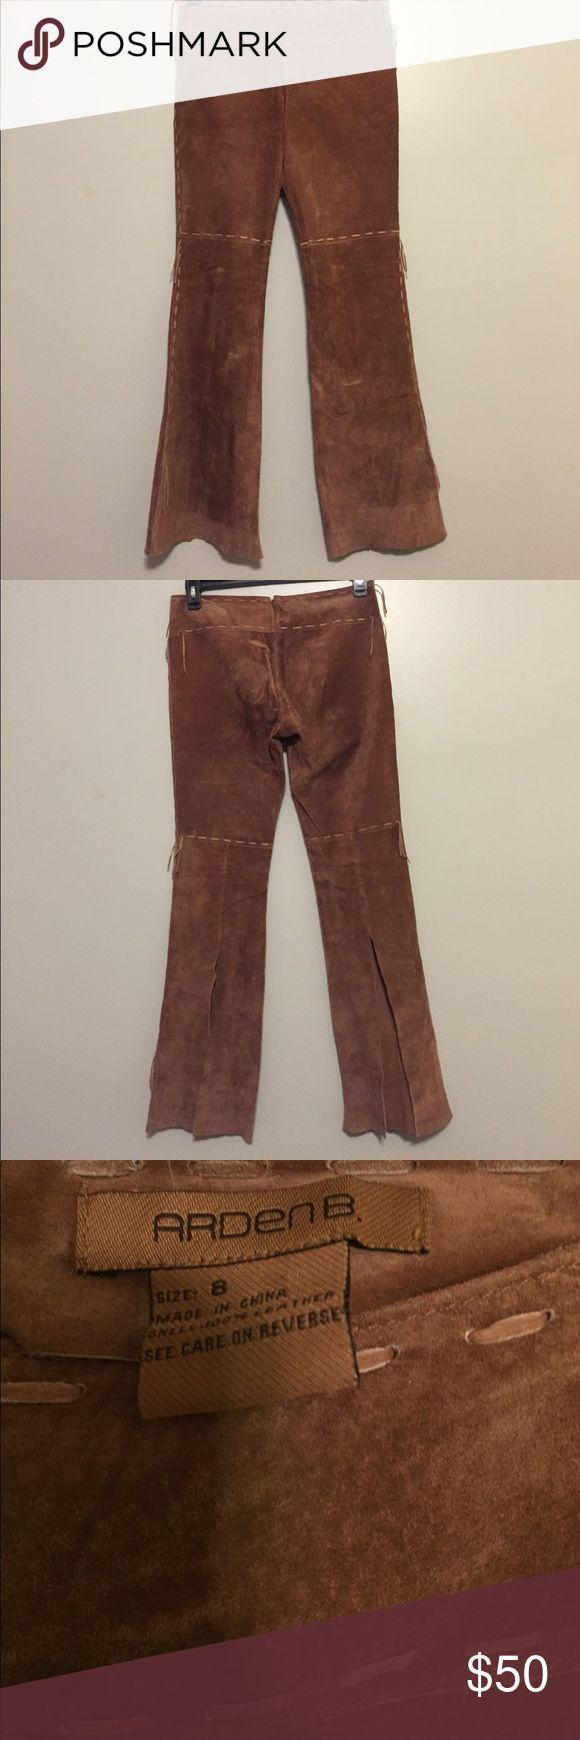 Arden B Leather Pants Arden B Leather Pants size 8 waist is approx 16 inches flat, rise 9 inches, inseam 32 inches Arden B Pants